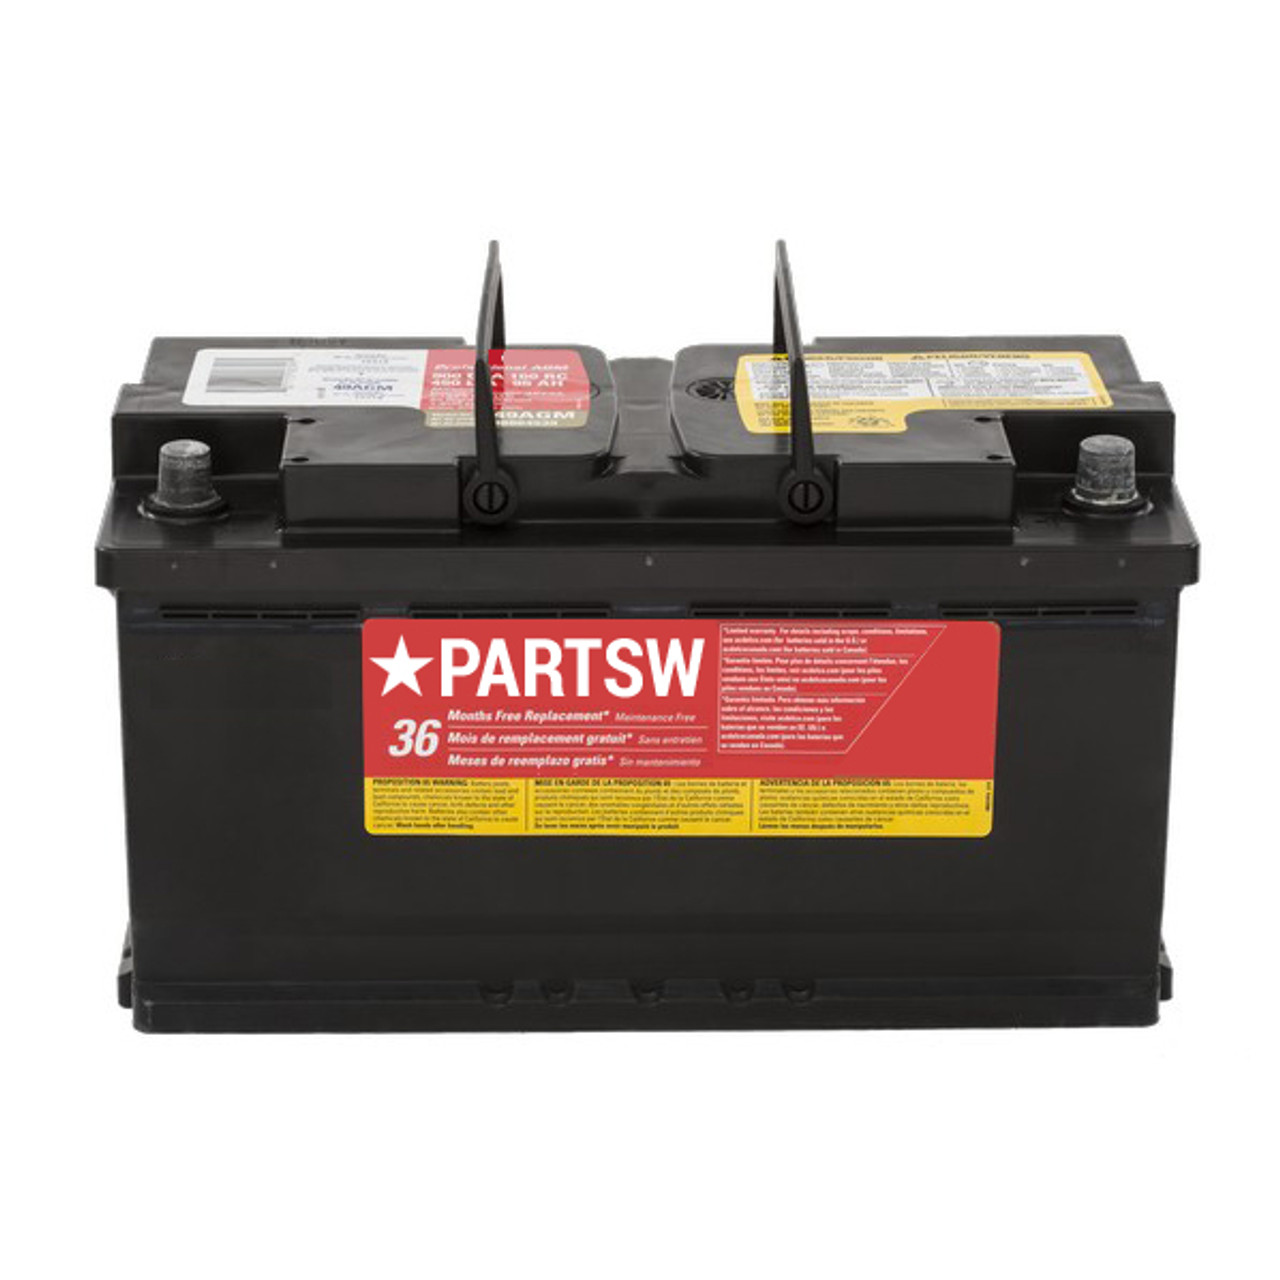 PartsW Red Top Battery